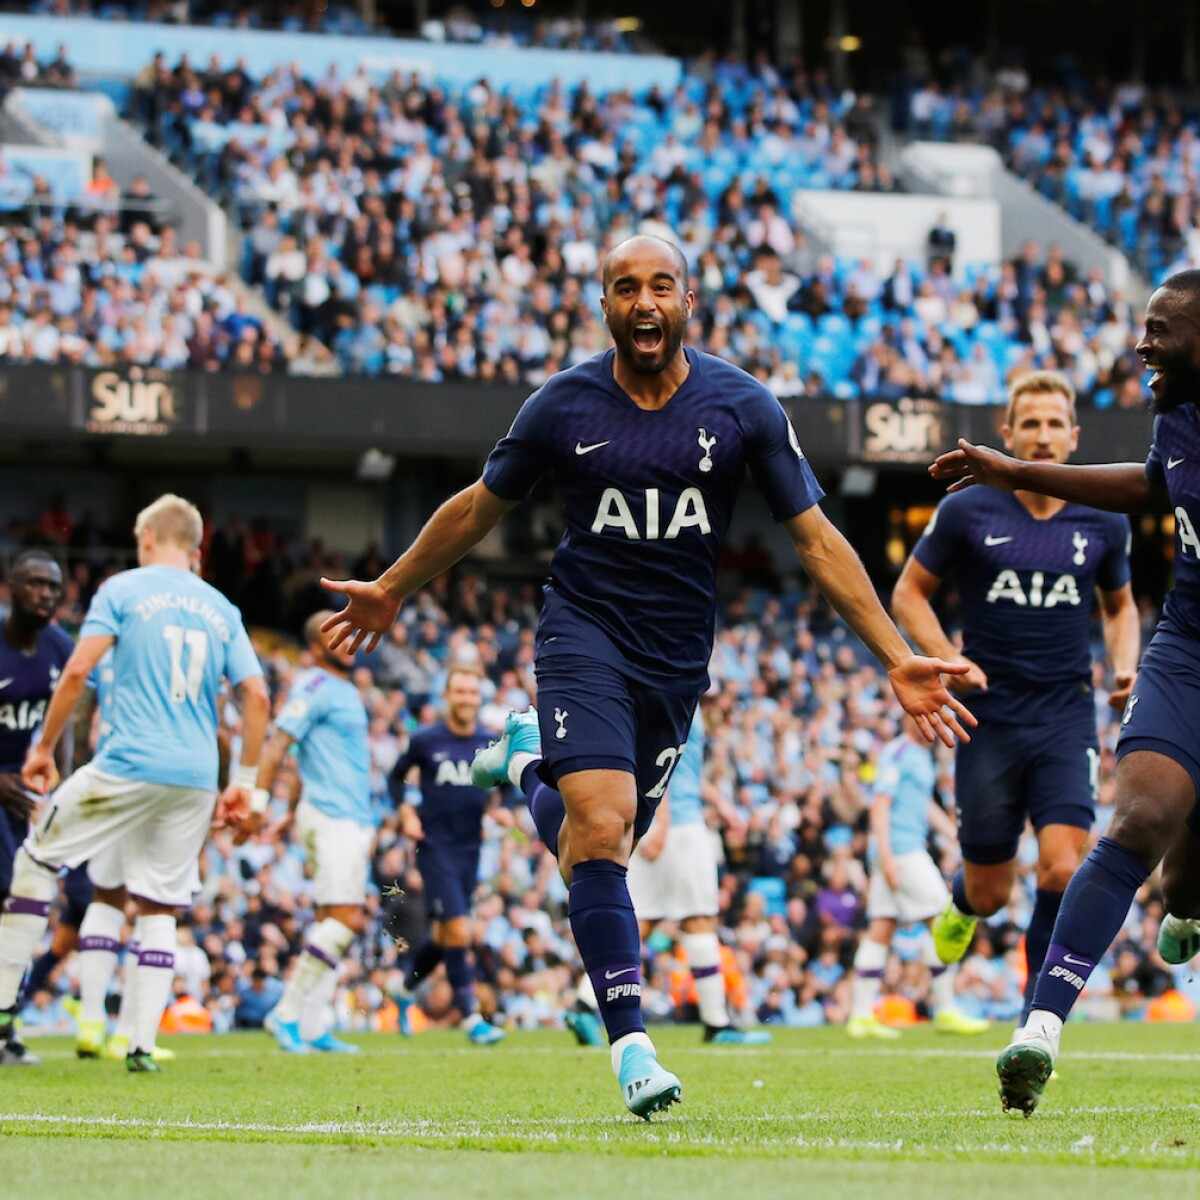 Lucas Moura Spurs Goals: Manchester City Vs Tottenham